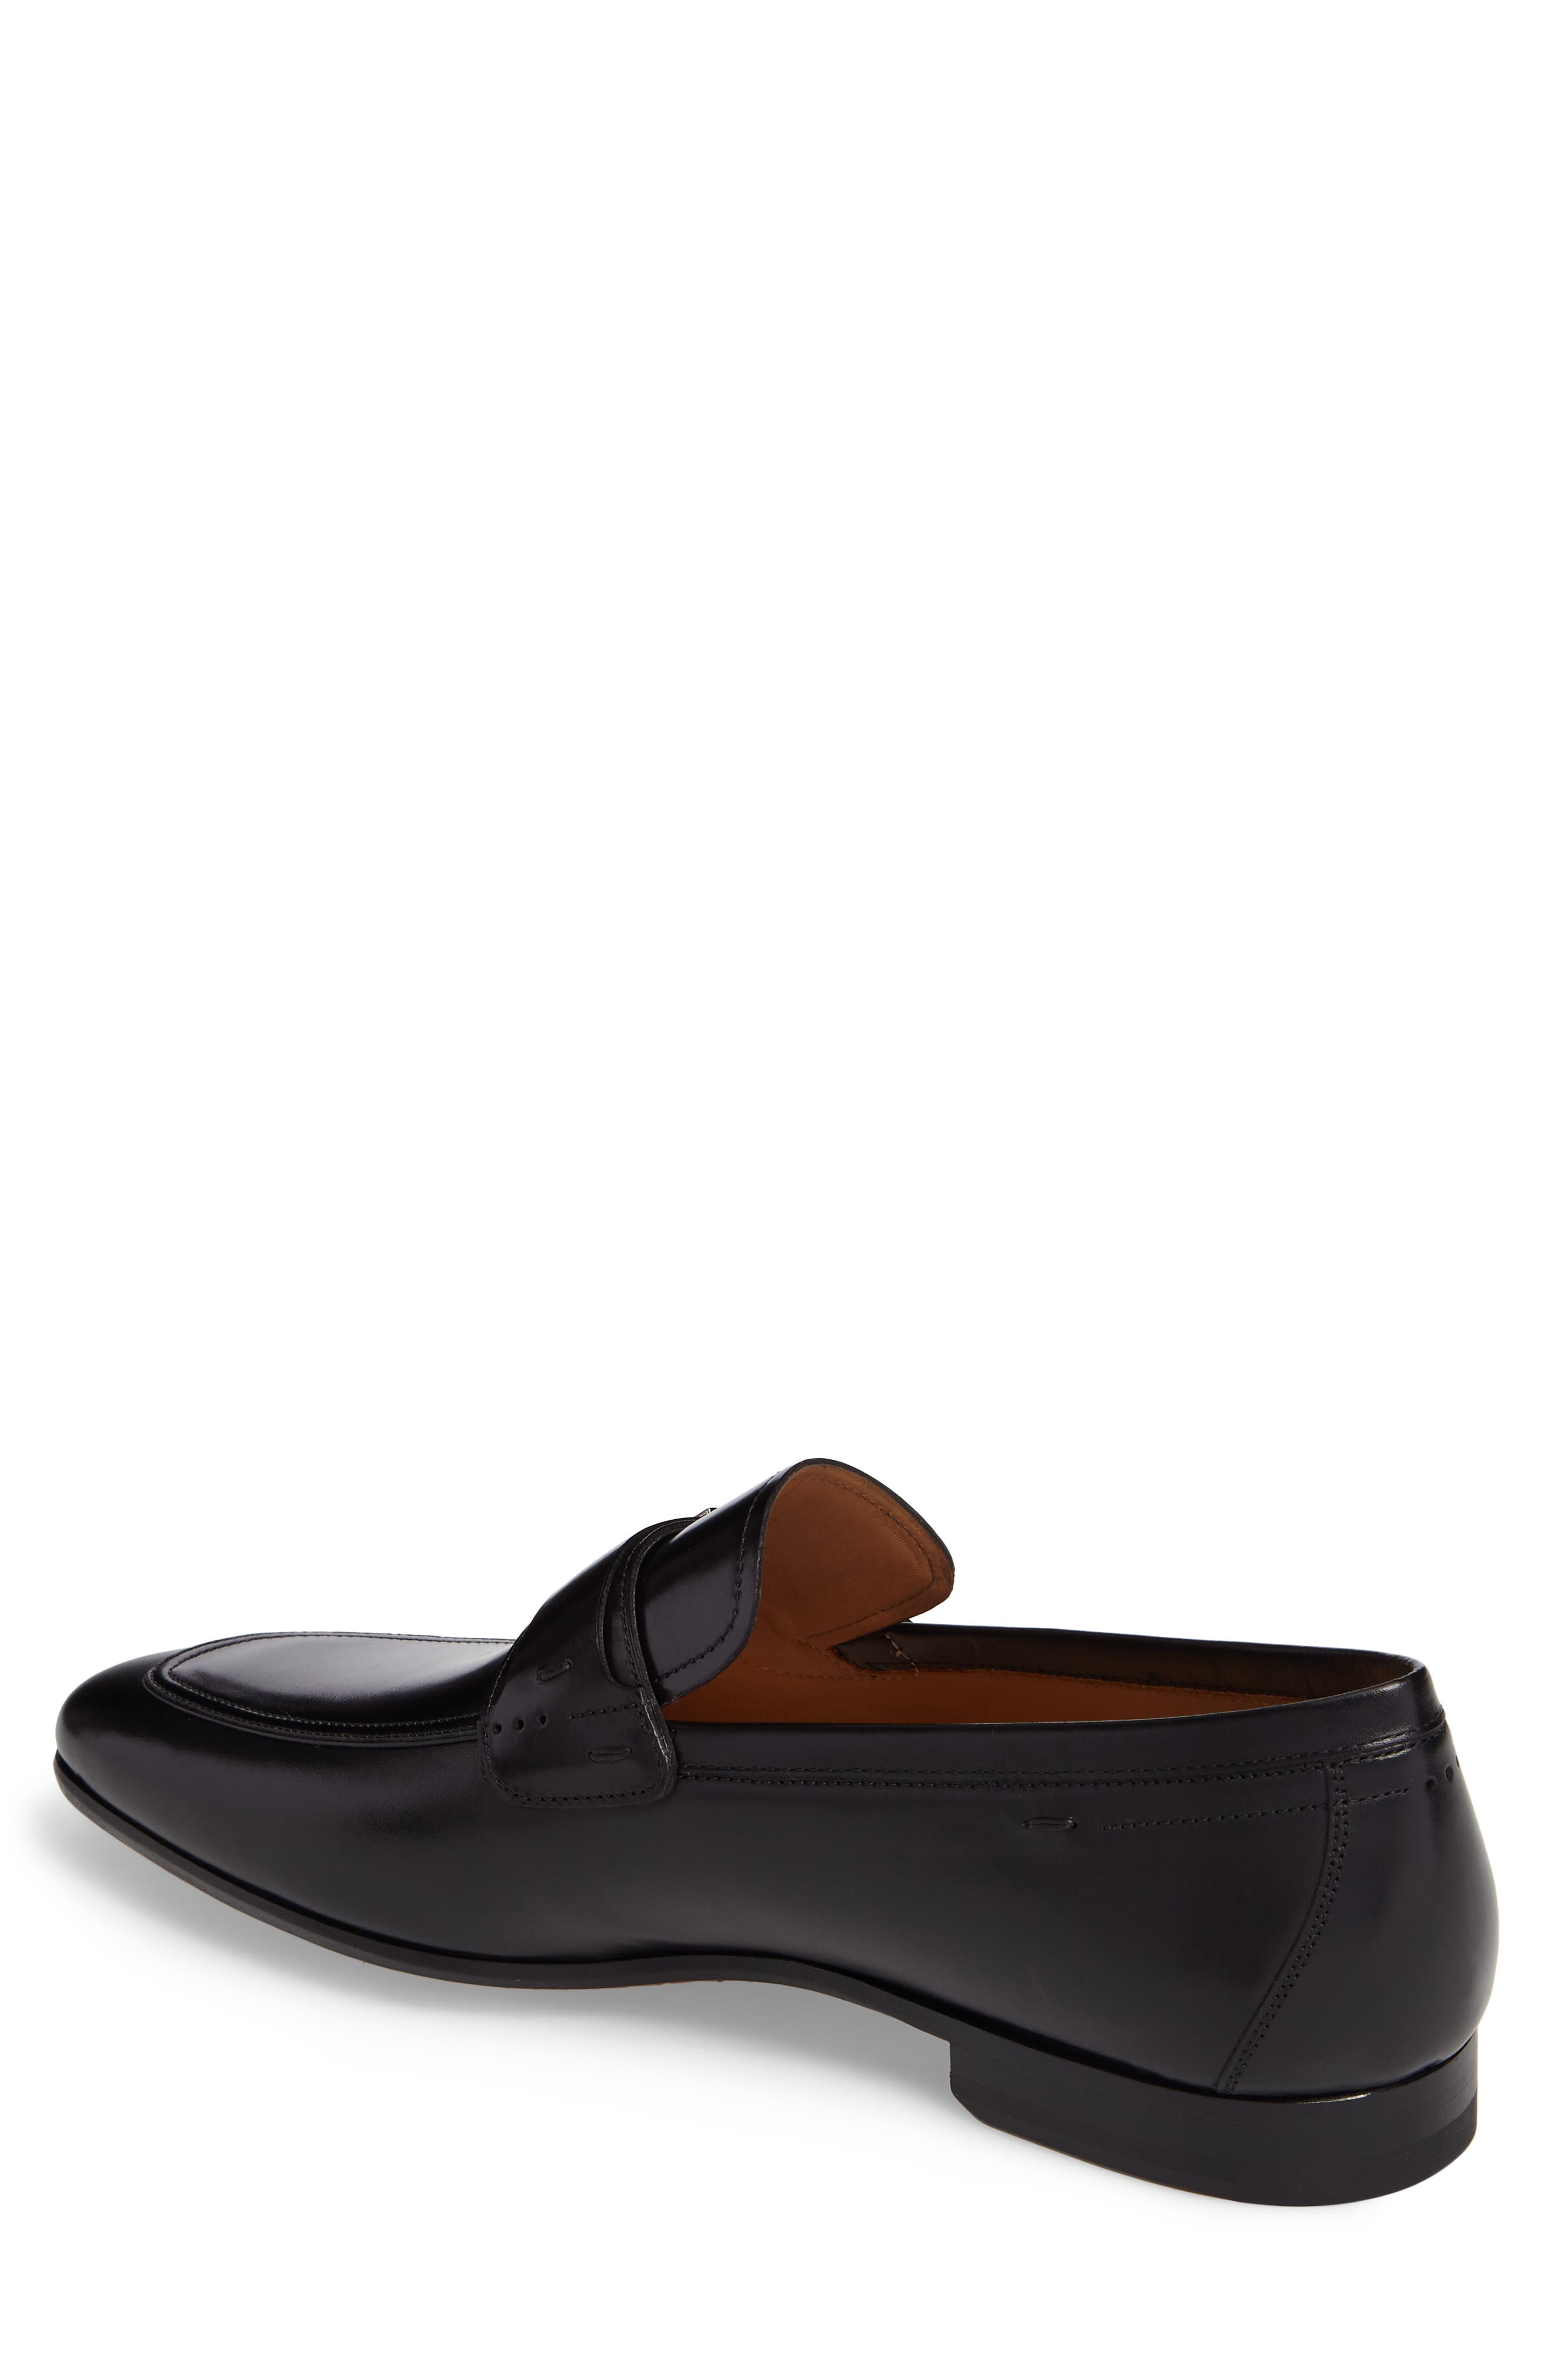 Rico Bit Venetian Loafer,                             Alternate thumbnail 2, color,                             001